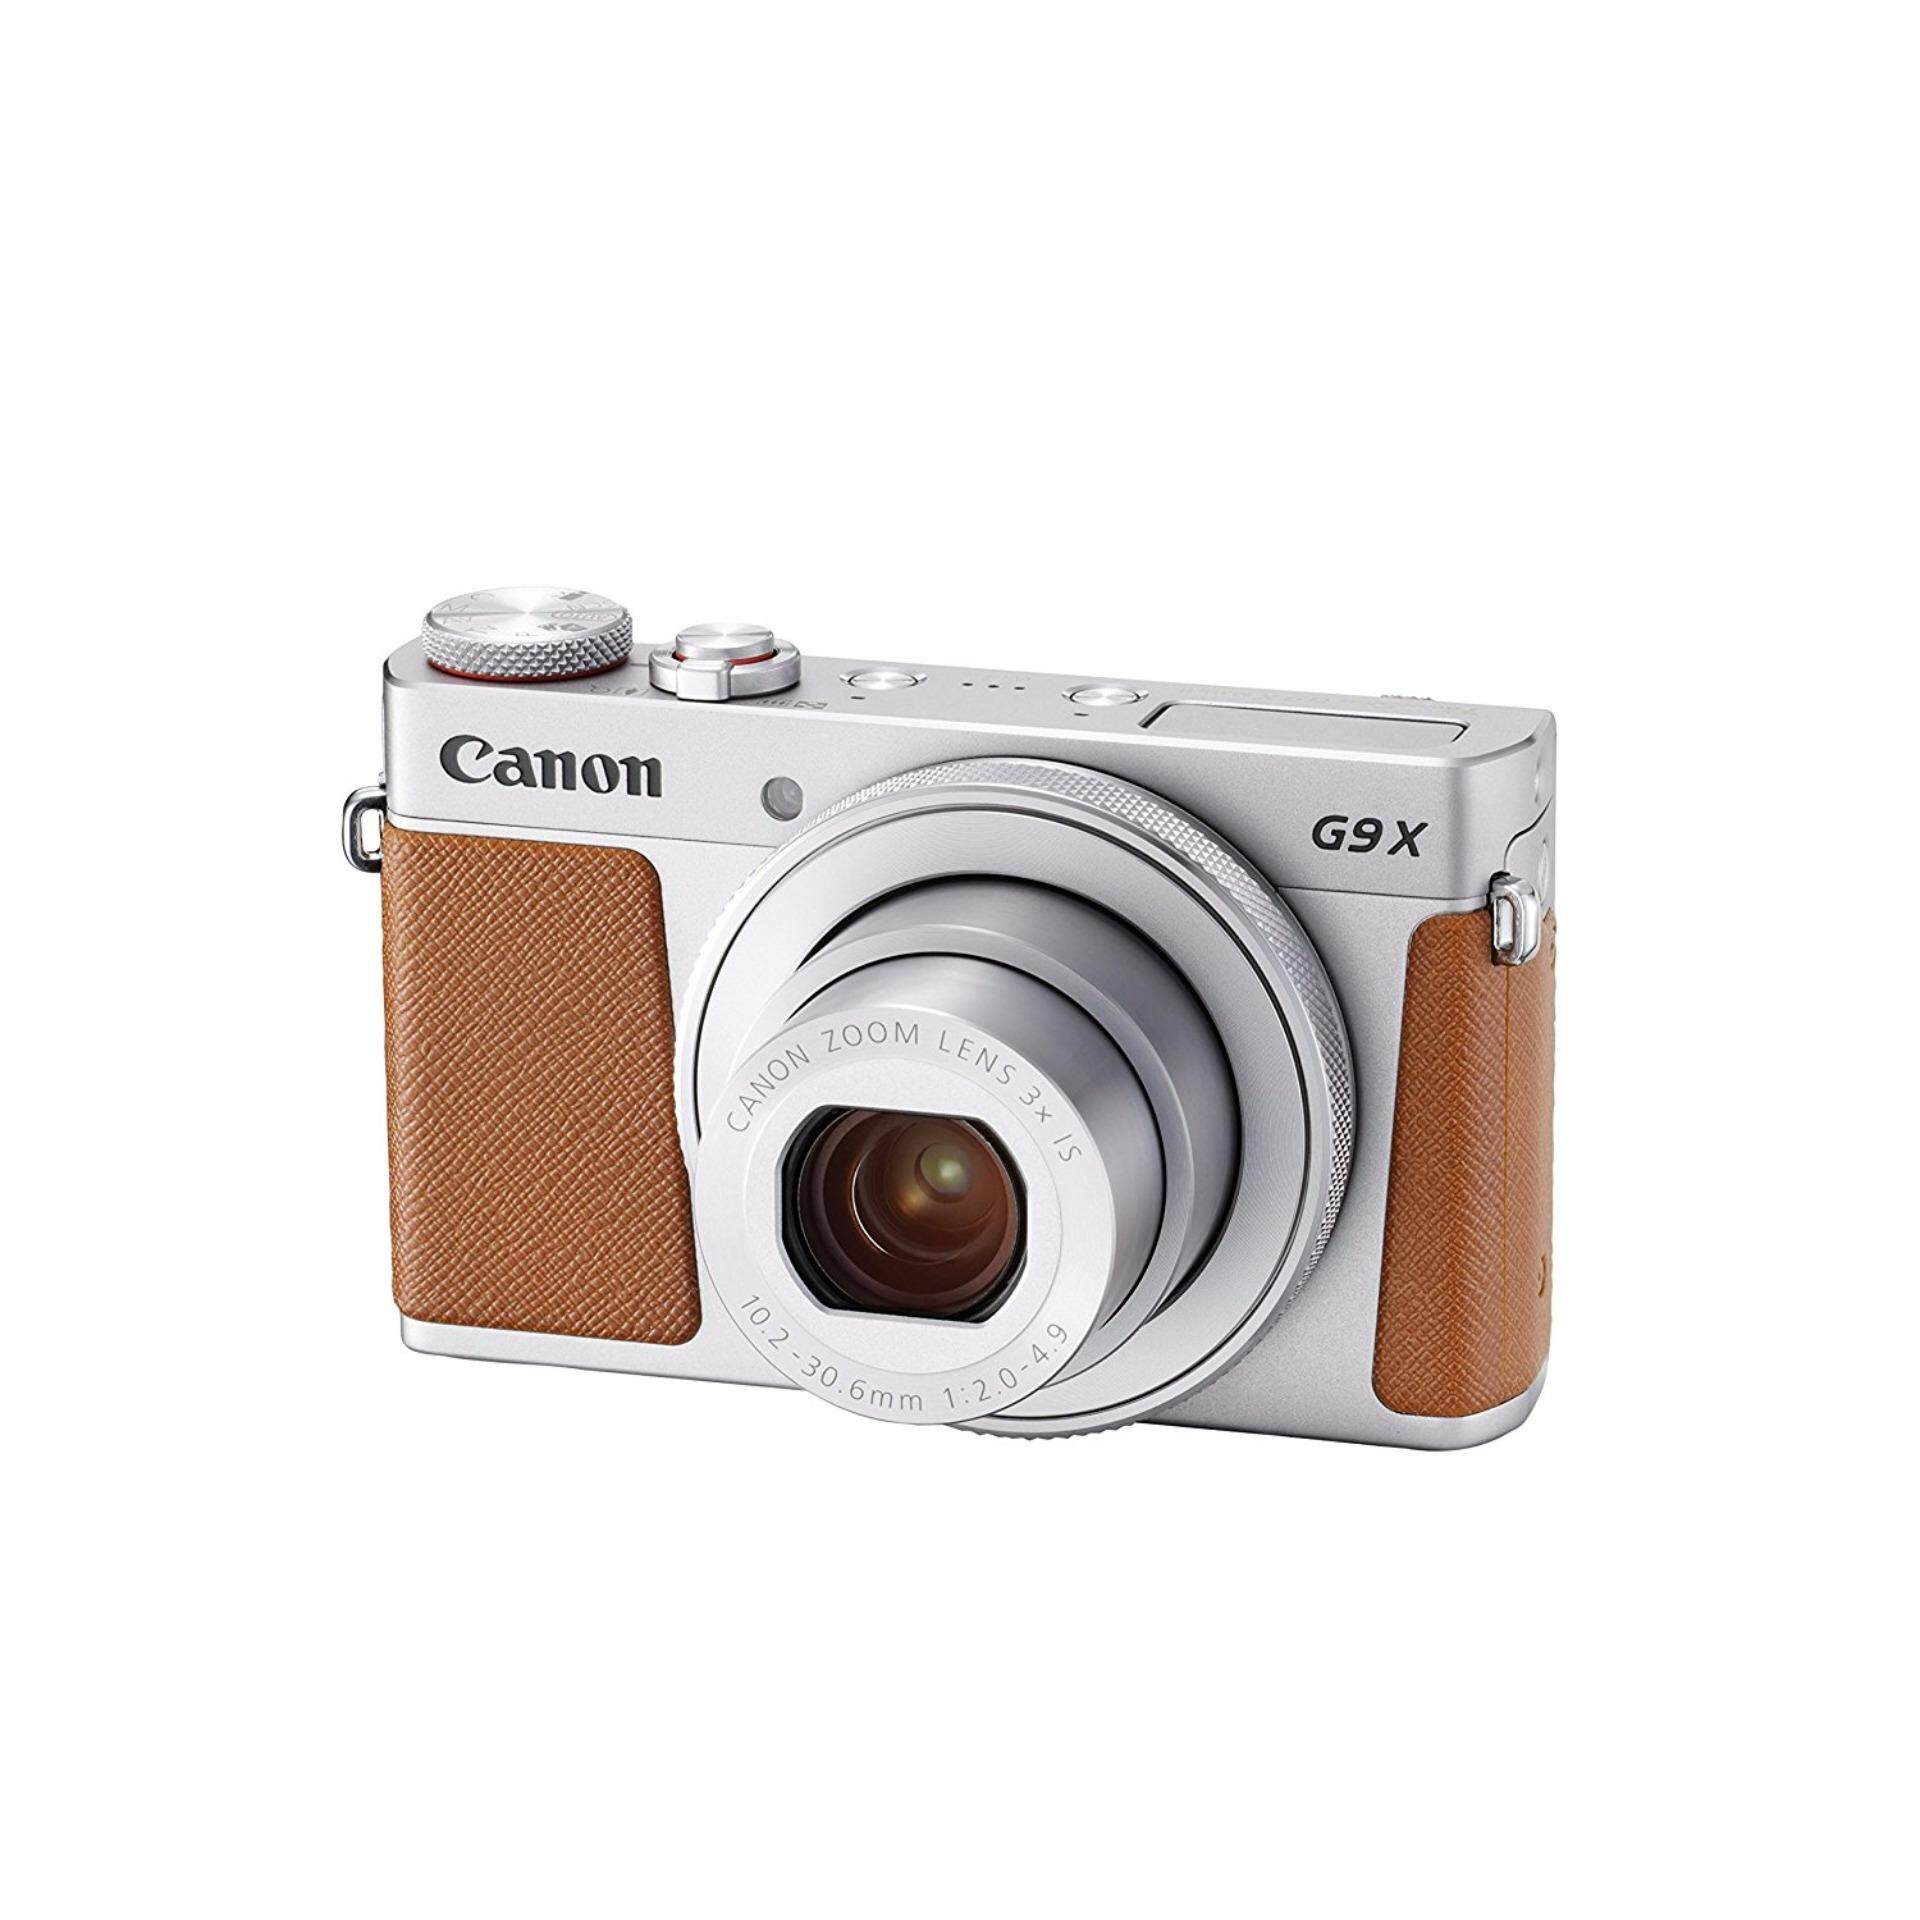 Sell Canon Camera Cheapest Best Quality My Store Ixus 185 20 Mp 8x Zoom Free Sdhc 16gb Case Tripod Myr 1555